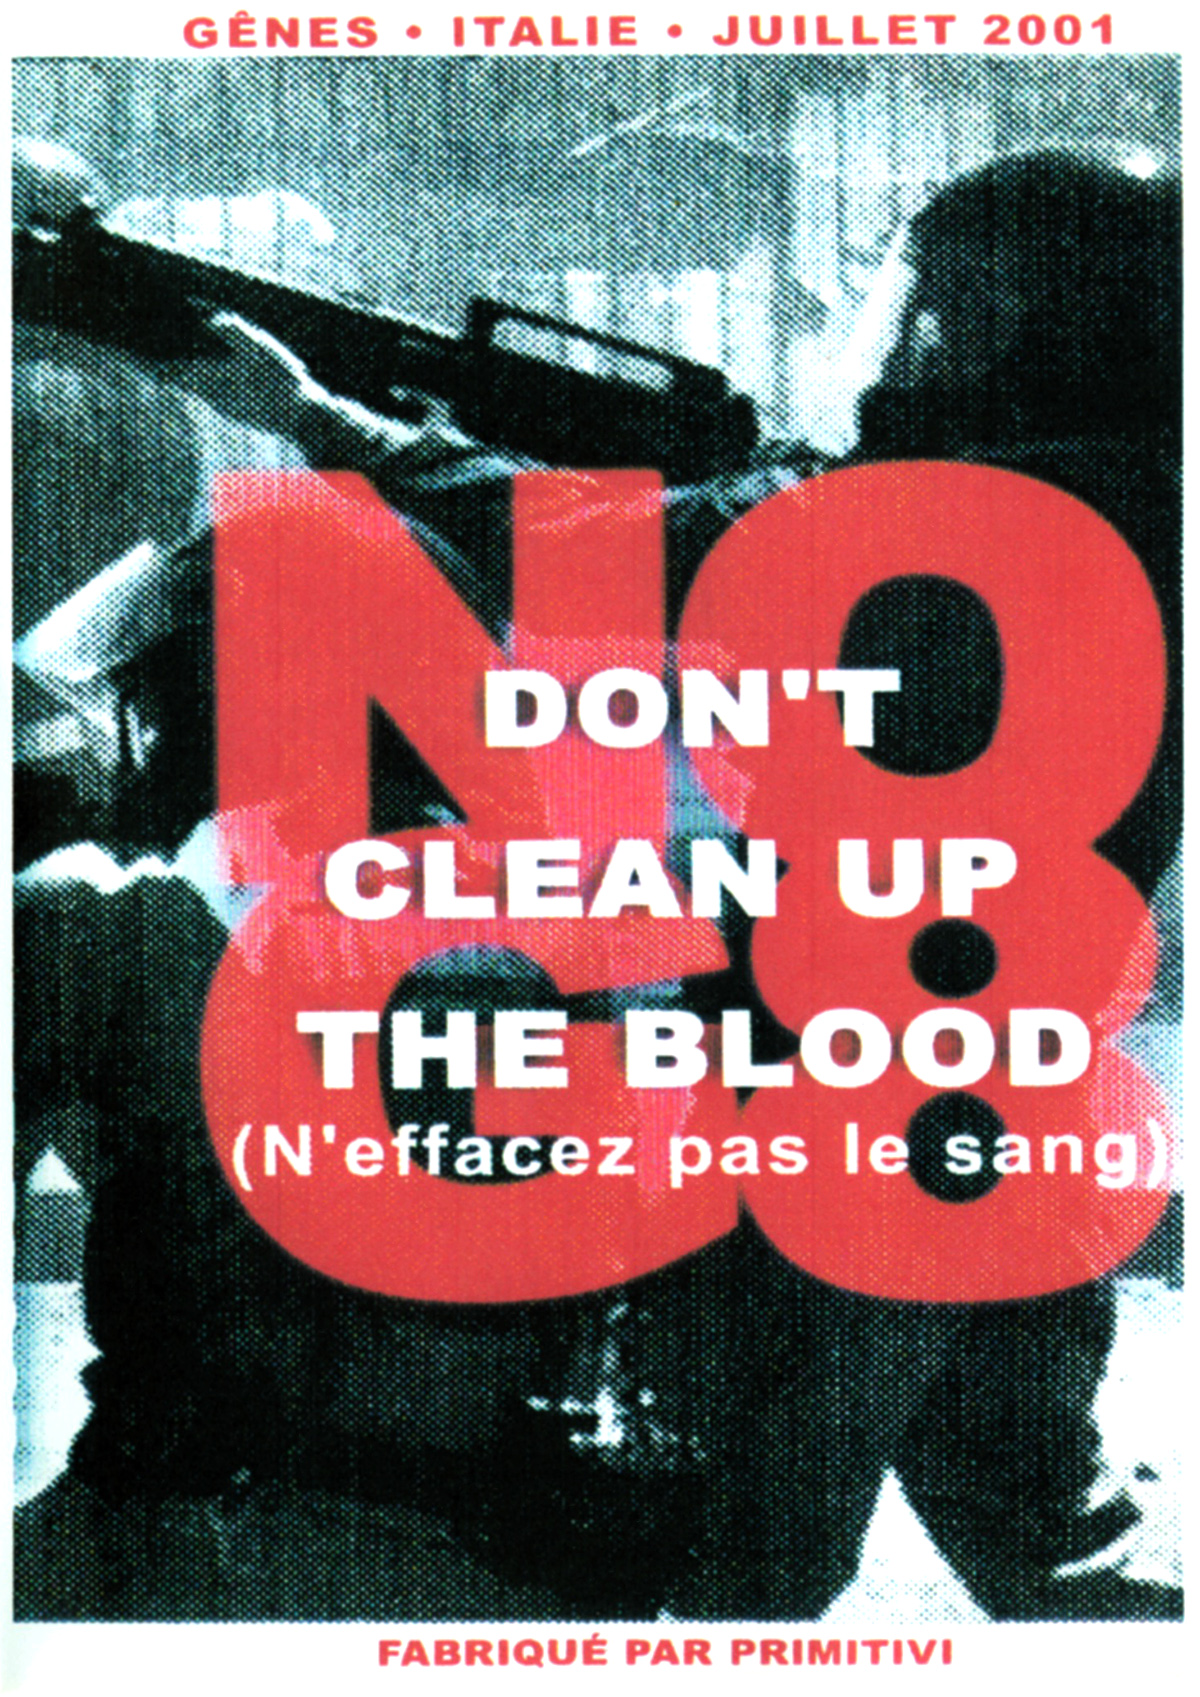 Don't clean up the blood